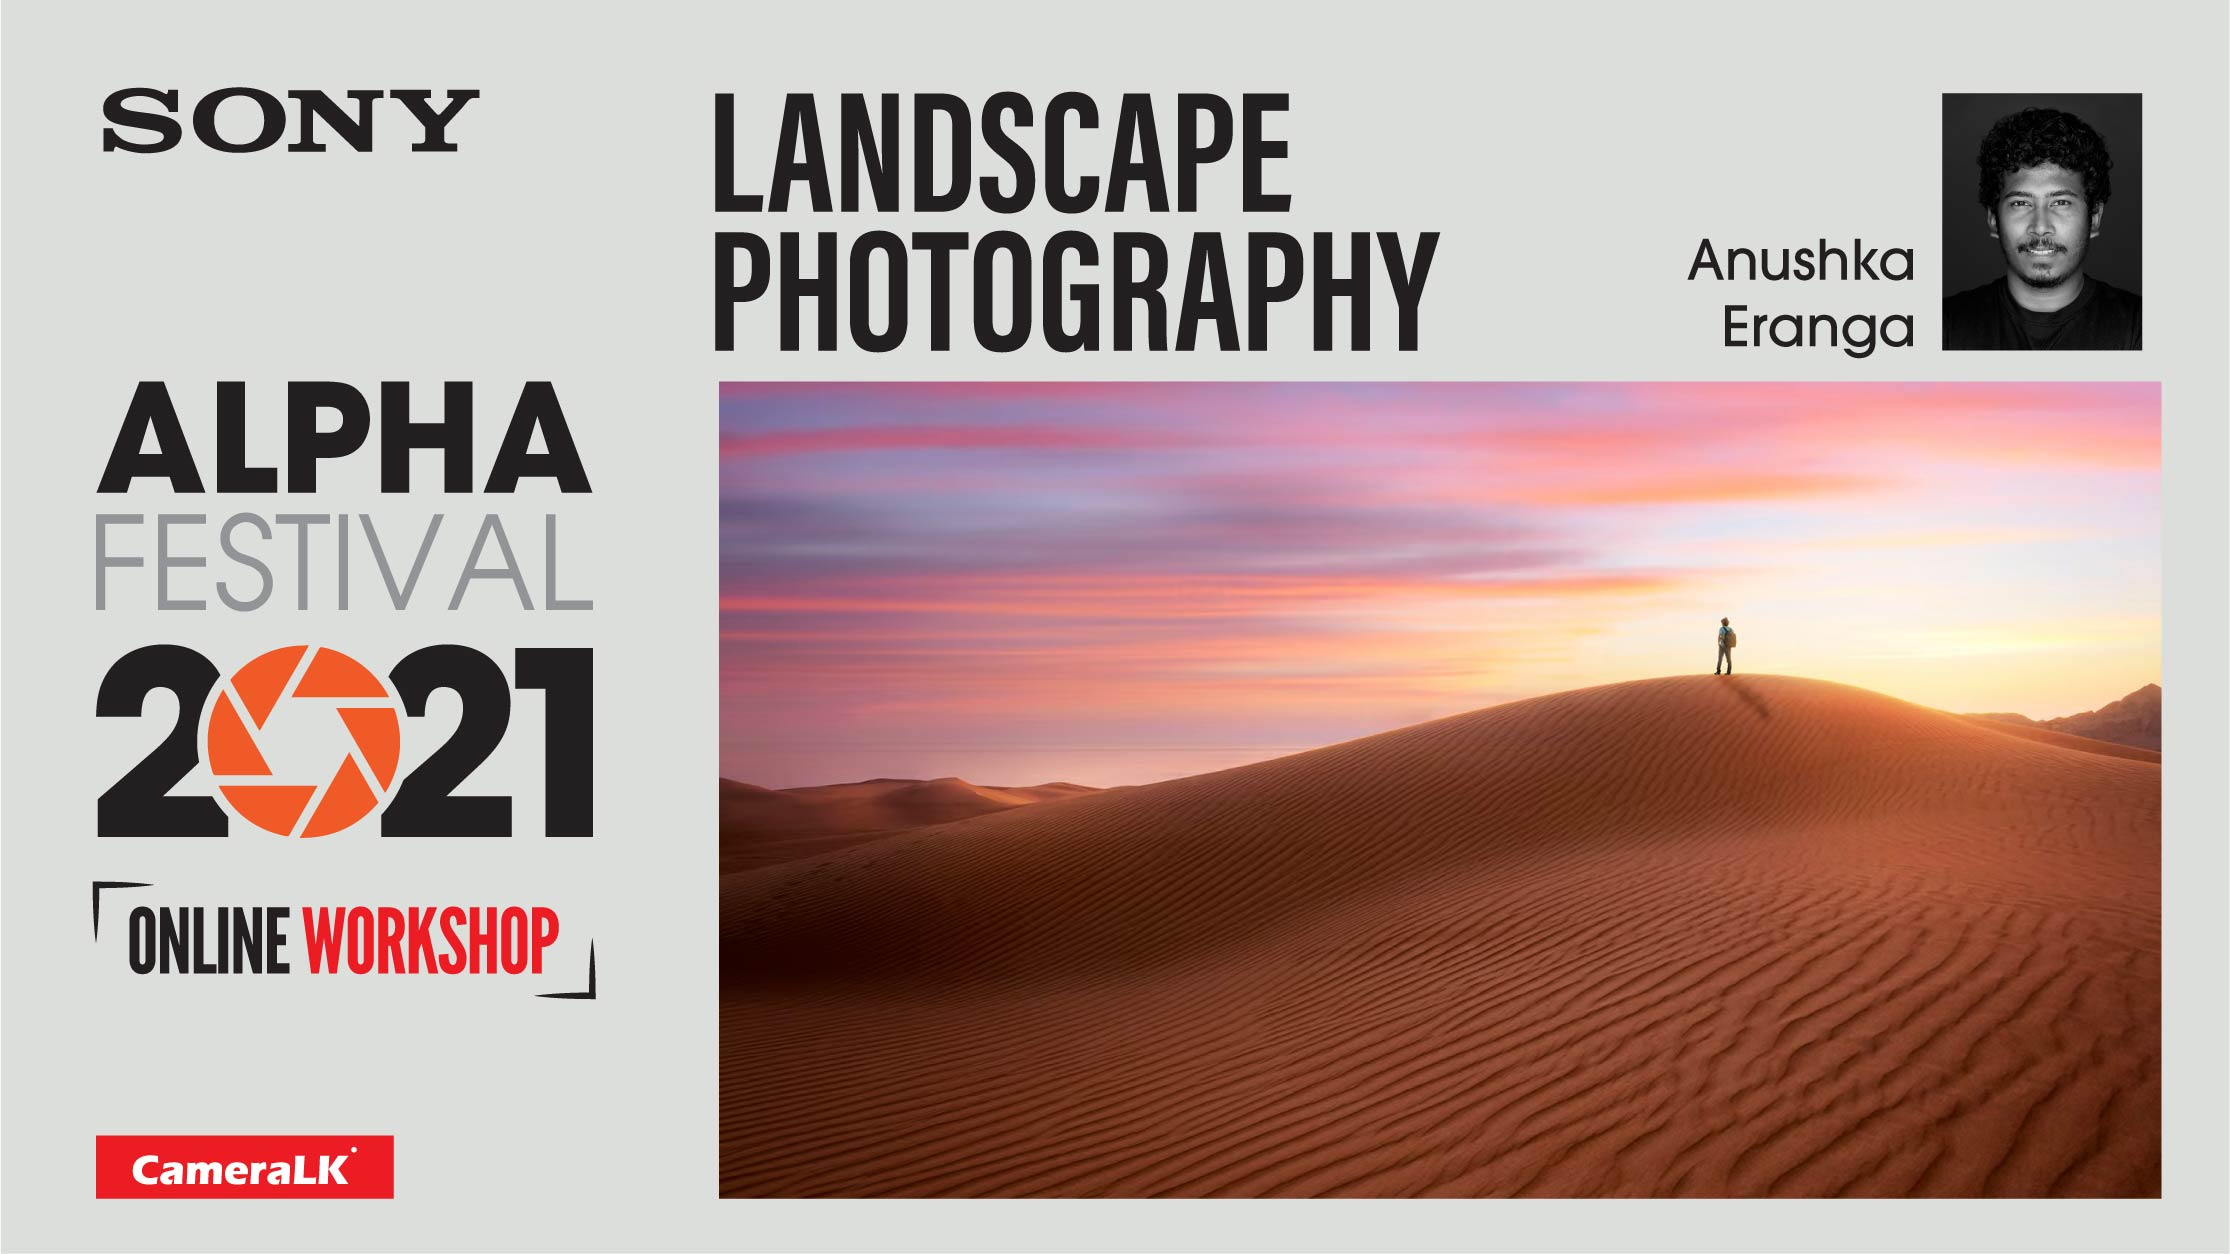 Landscape Photography Workshop By Anushka Eranga